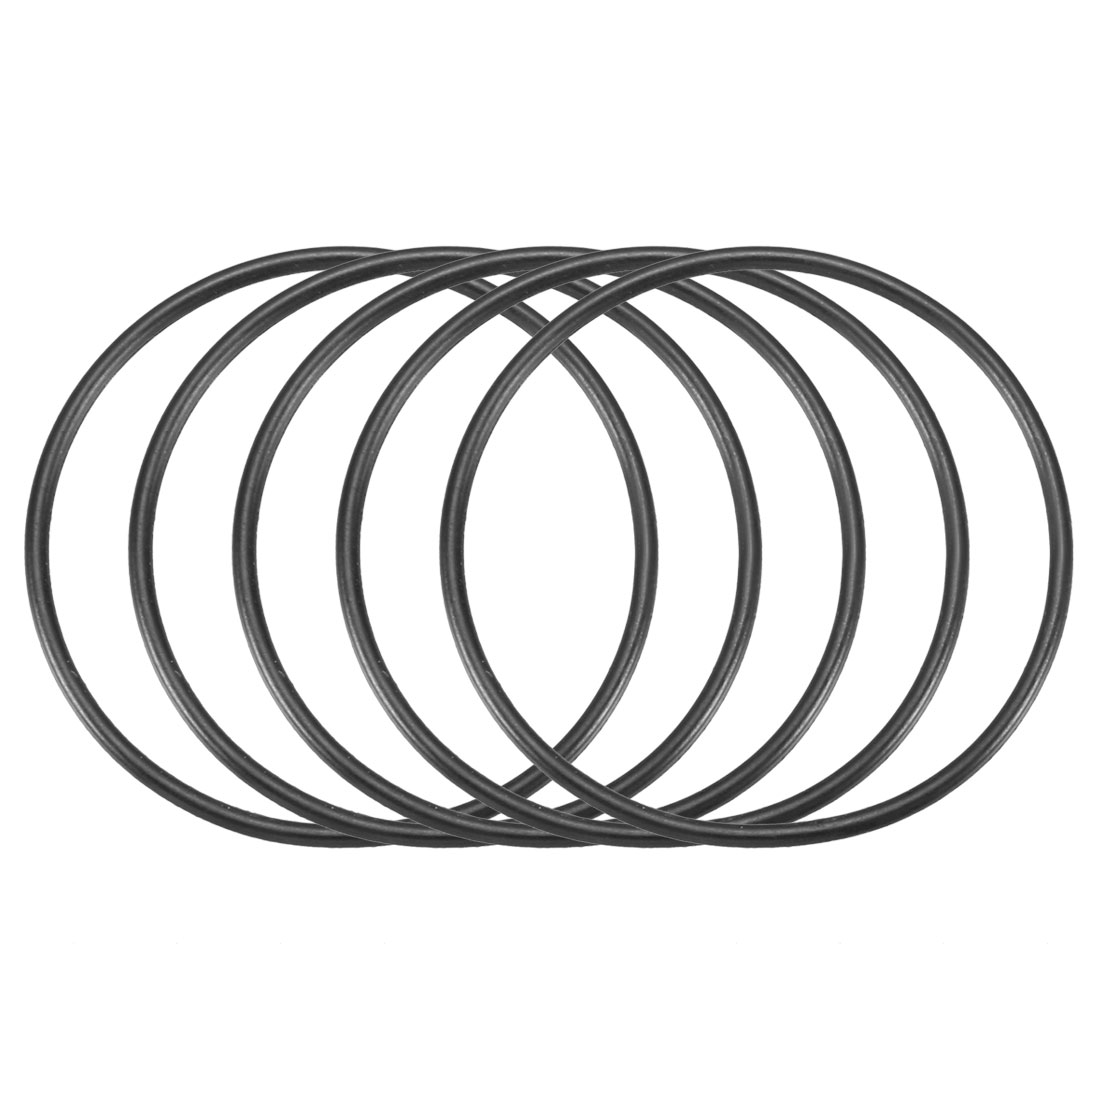 30pcs Black 39mm Outer Dia 1.5mm Thickness Sealing Ring O-shape Rubber Grommet